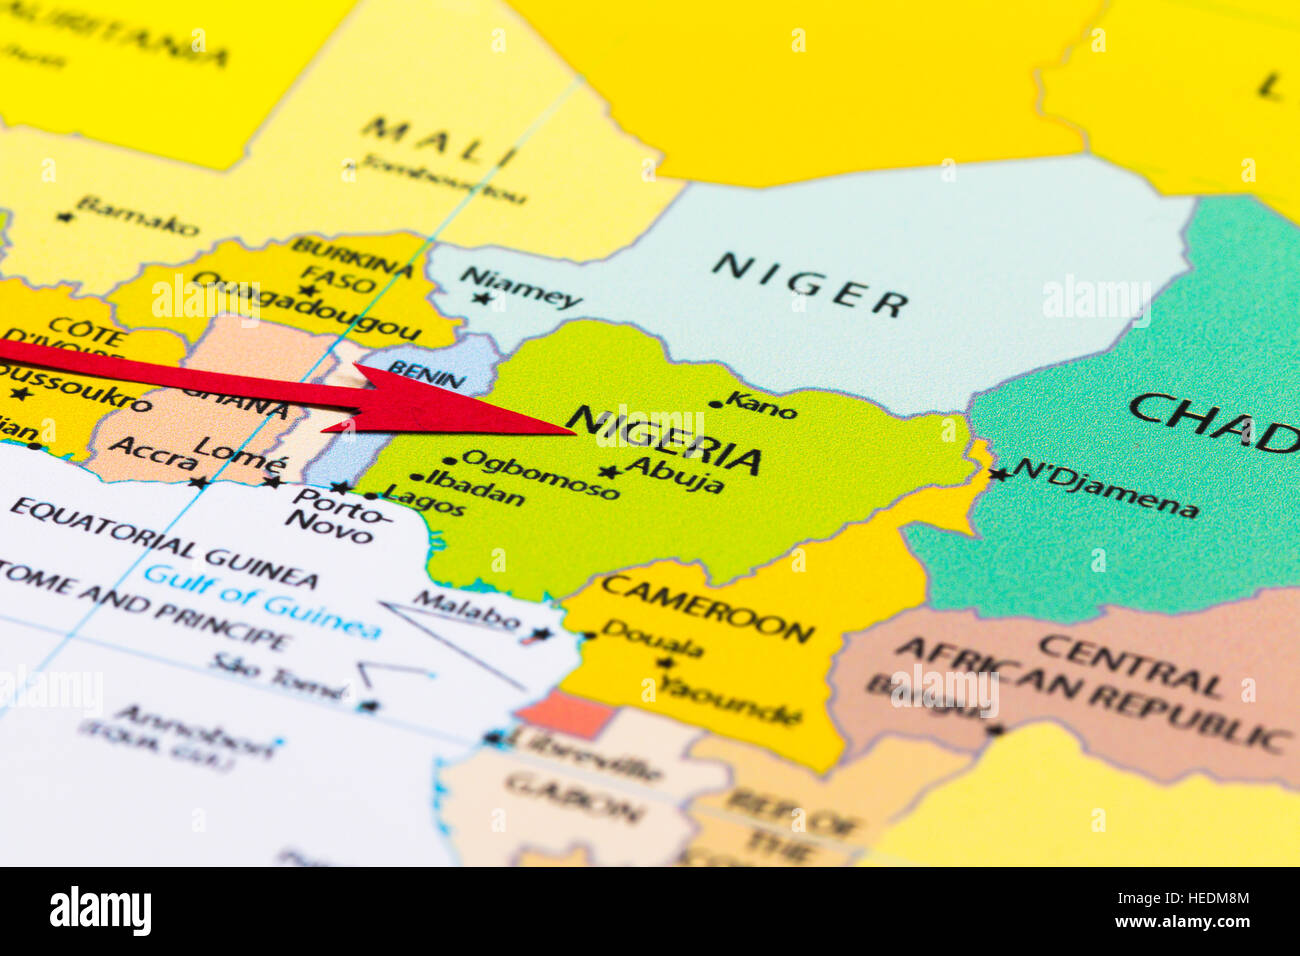 Africa Map Nigeria.Red Arrow Pointing Nigeria On The Map Of Africa Continent Stock